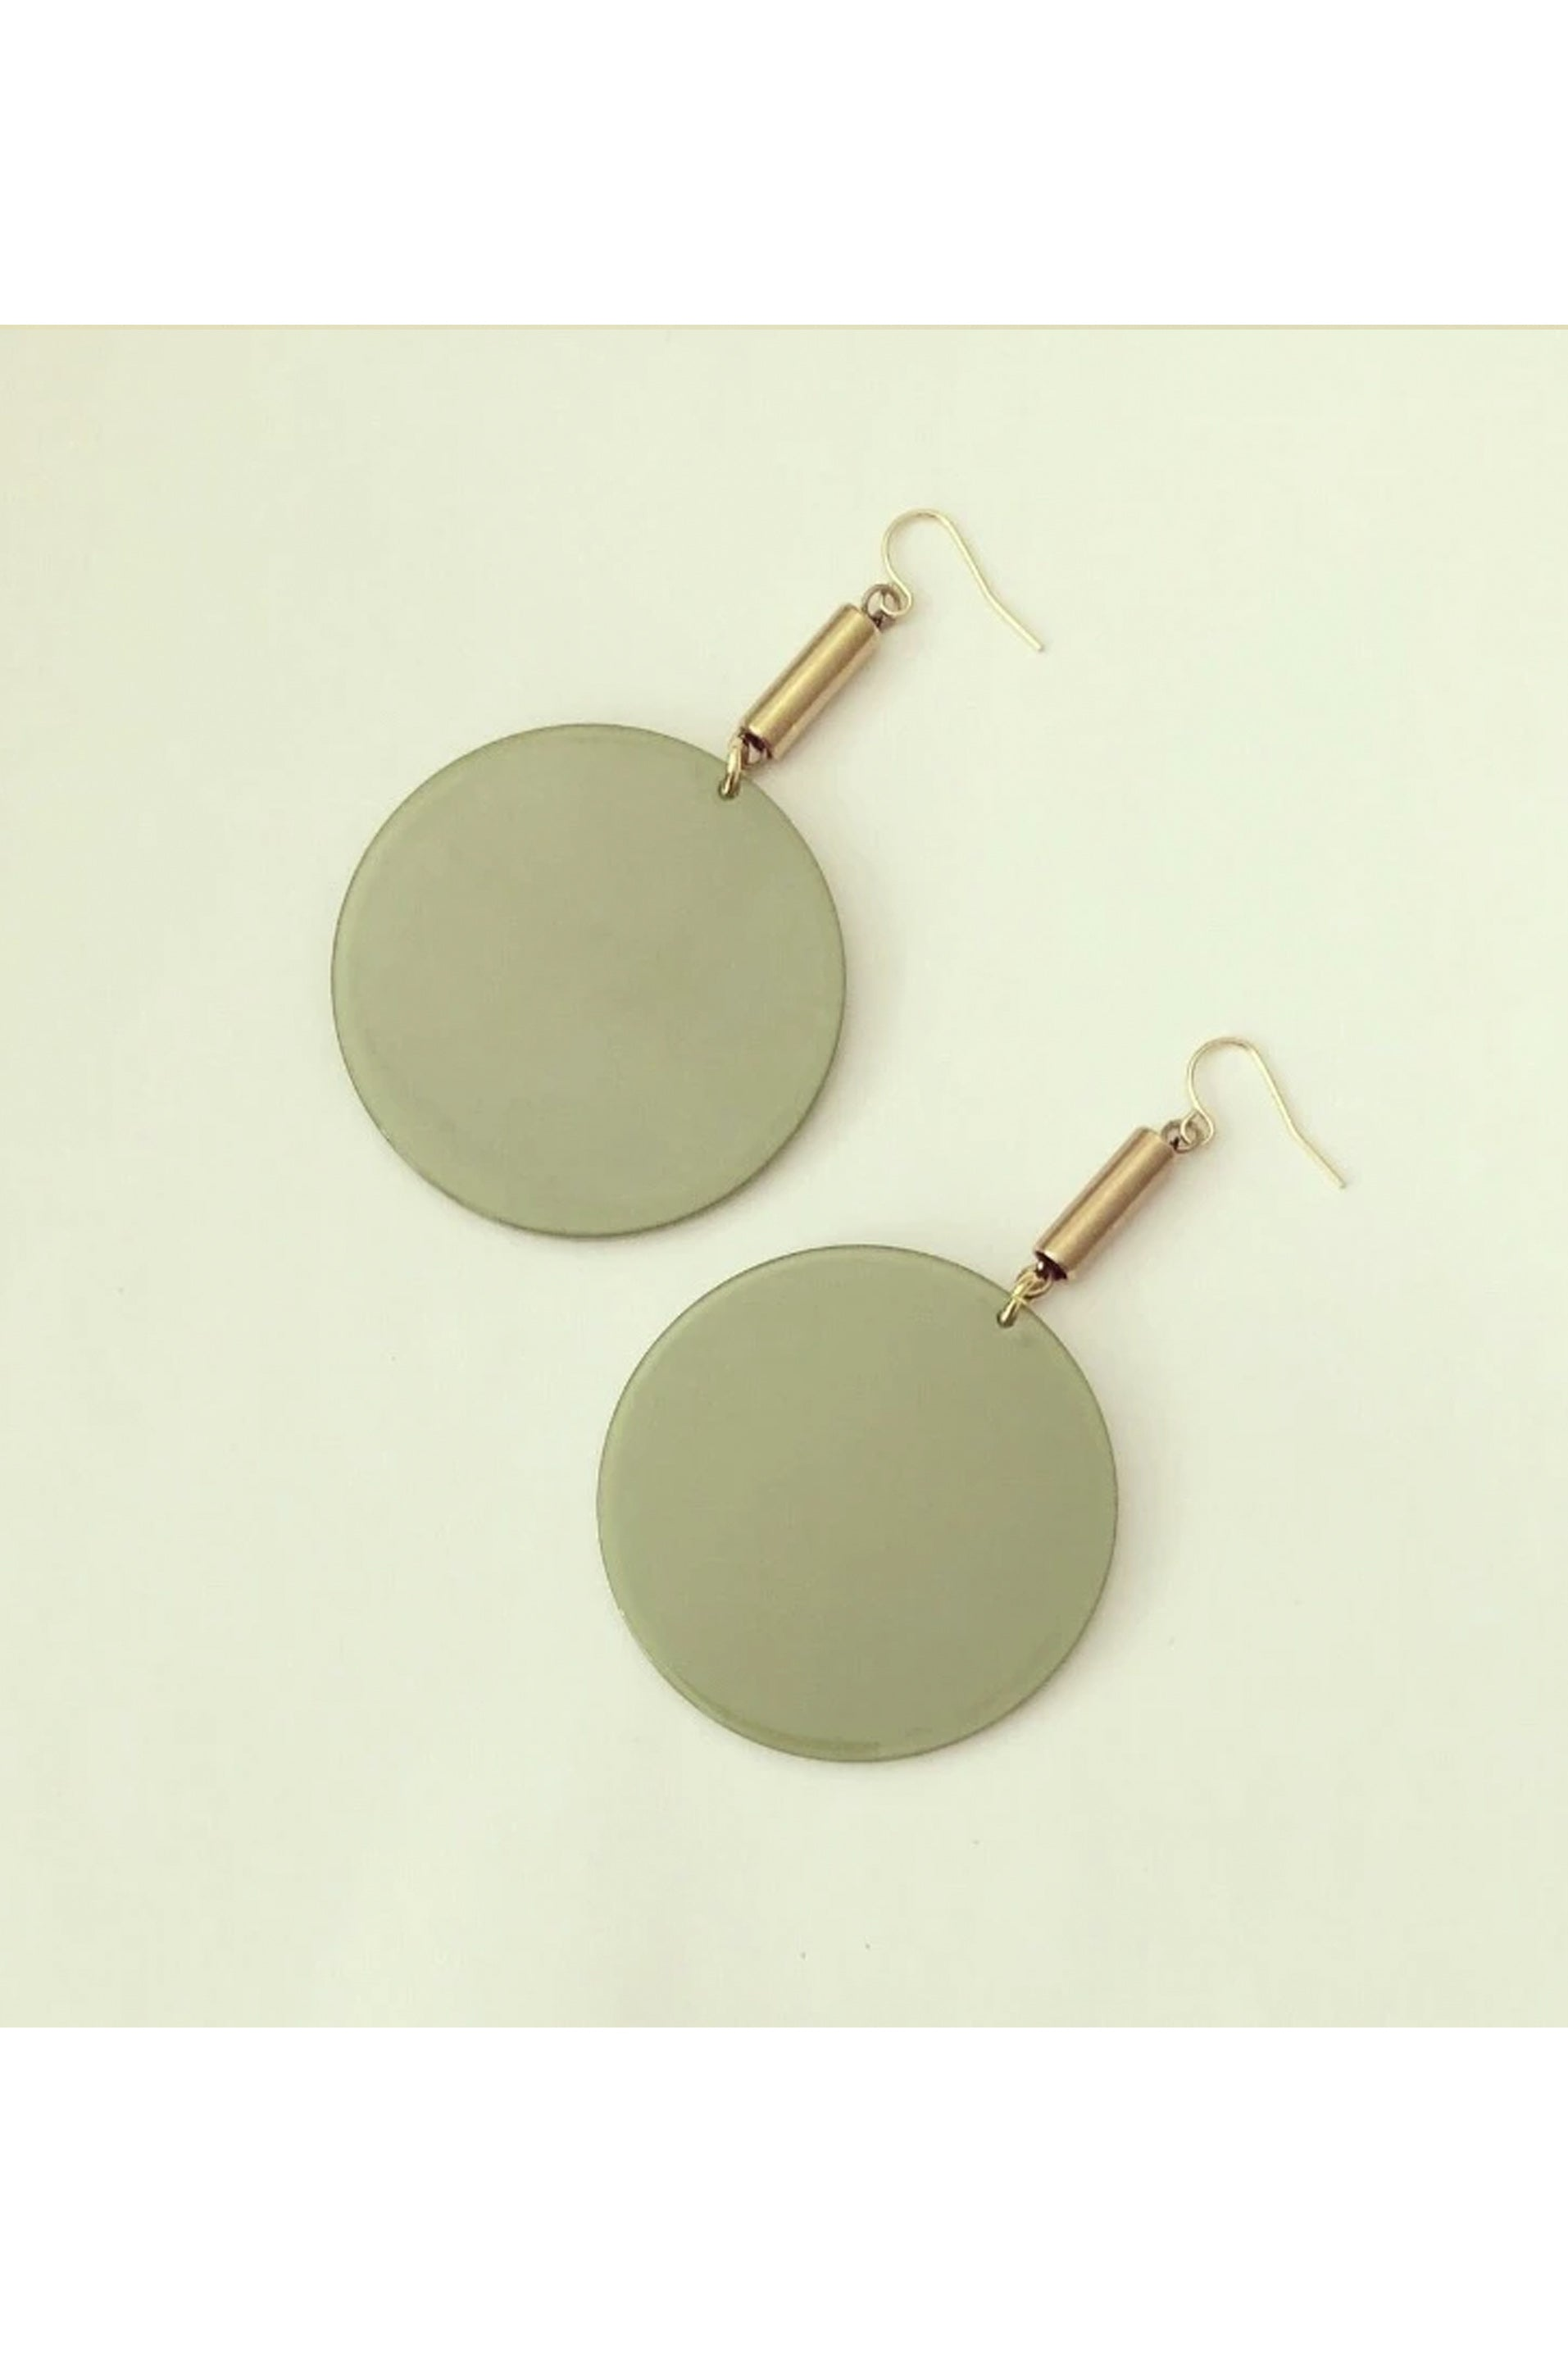 Flumme by Darlings of Denmark; flat lay; dangle earrings; raw brass tubes with green acrylic circle details